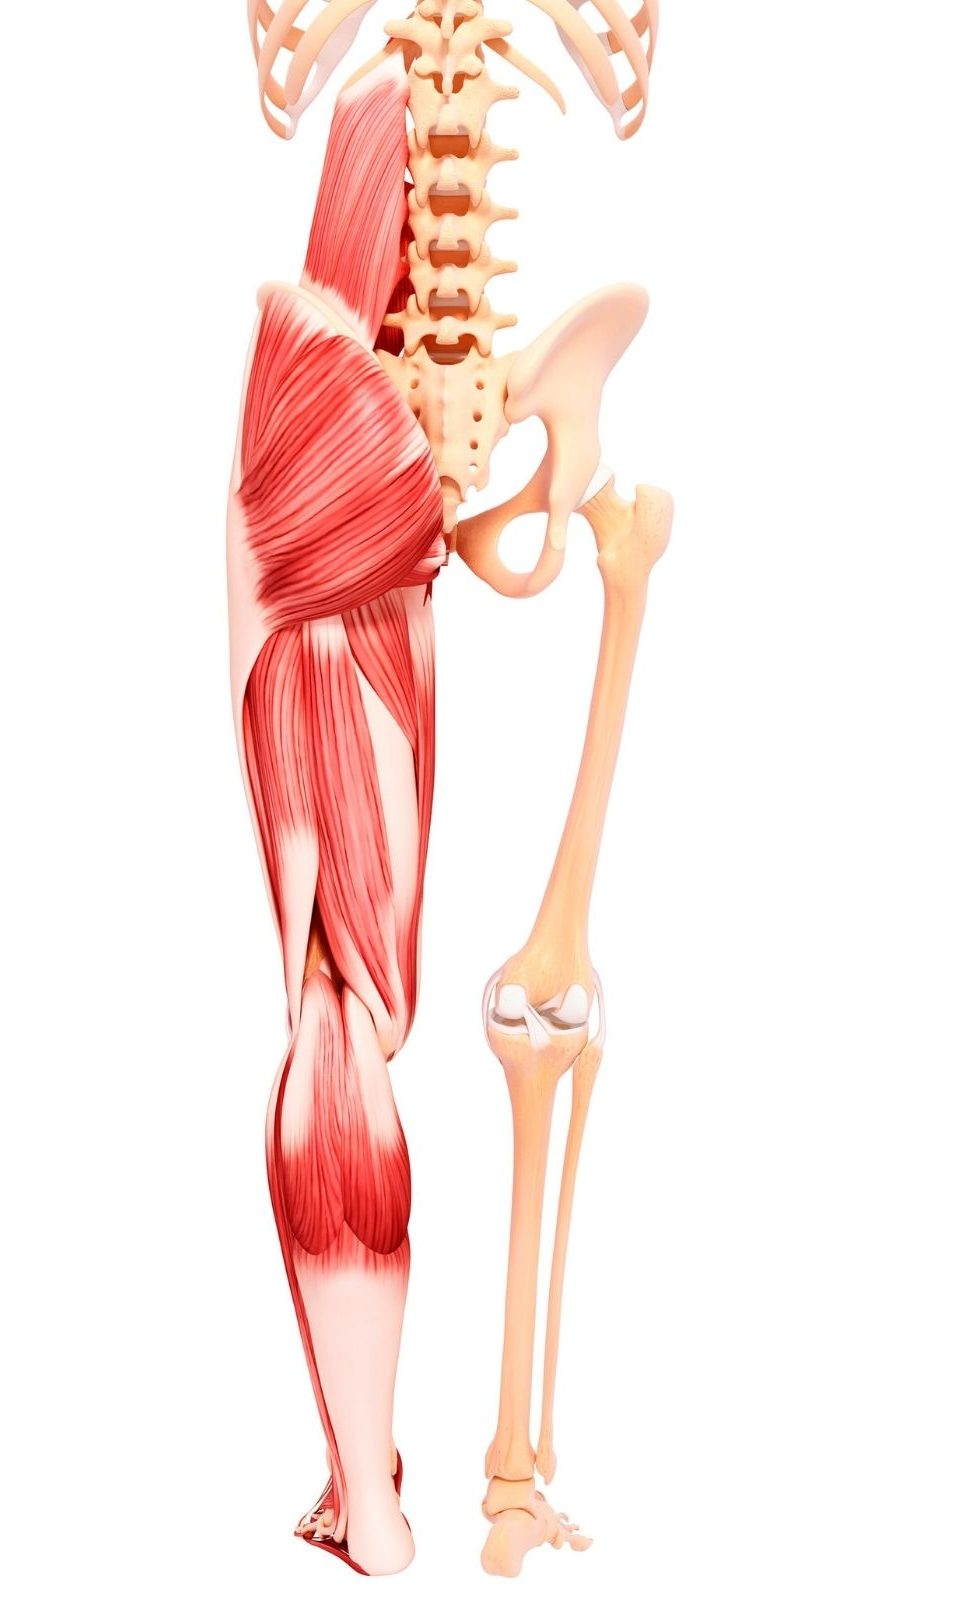 Complete view of leg muscles - flexibility